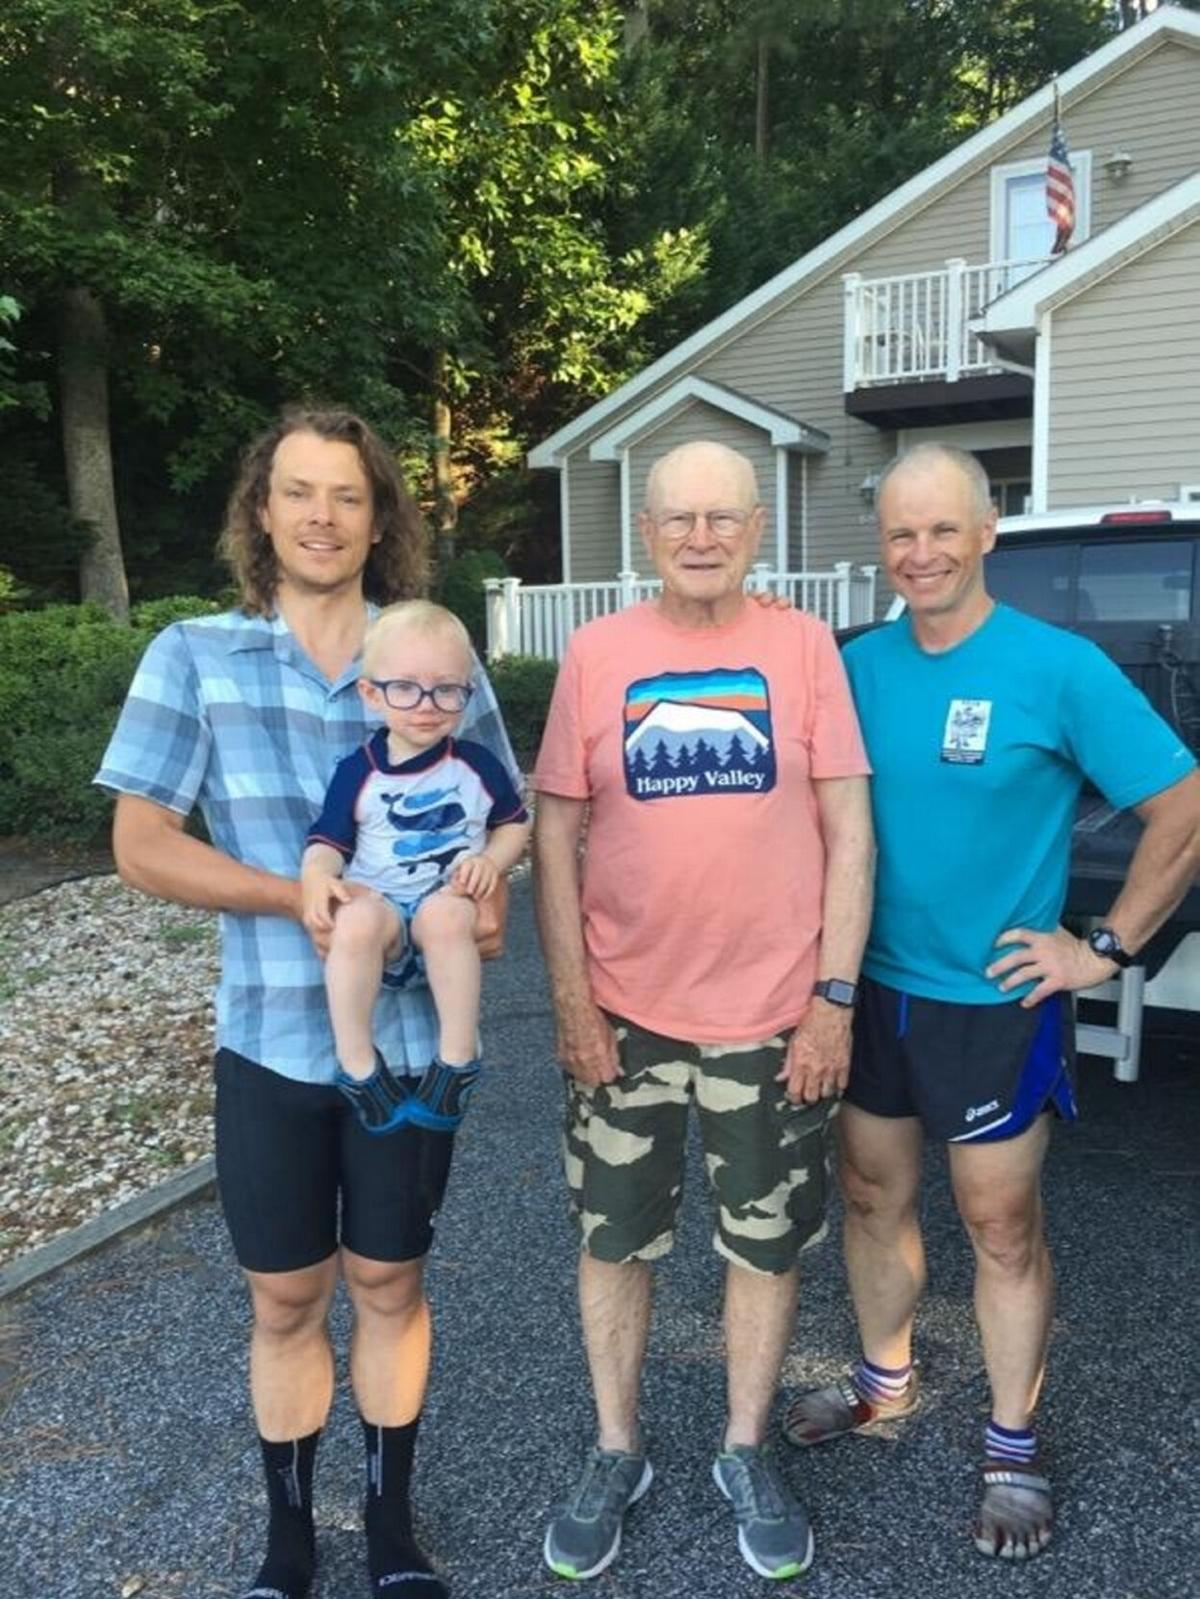 Grandfather to cycle for 24 hours as fundrasier for two-year-old grandson